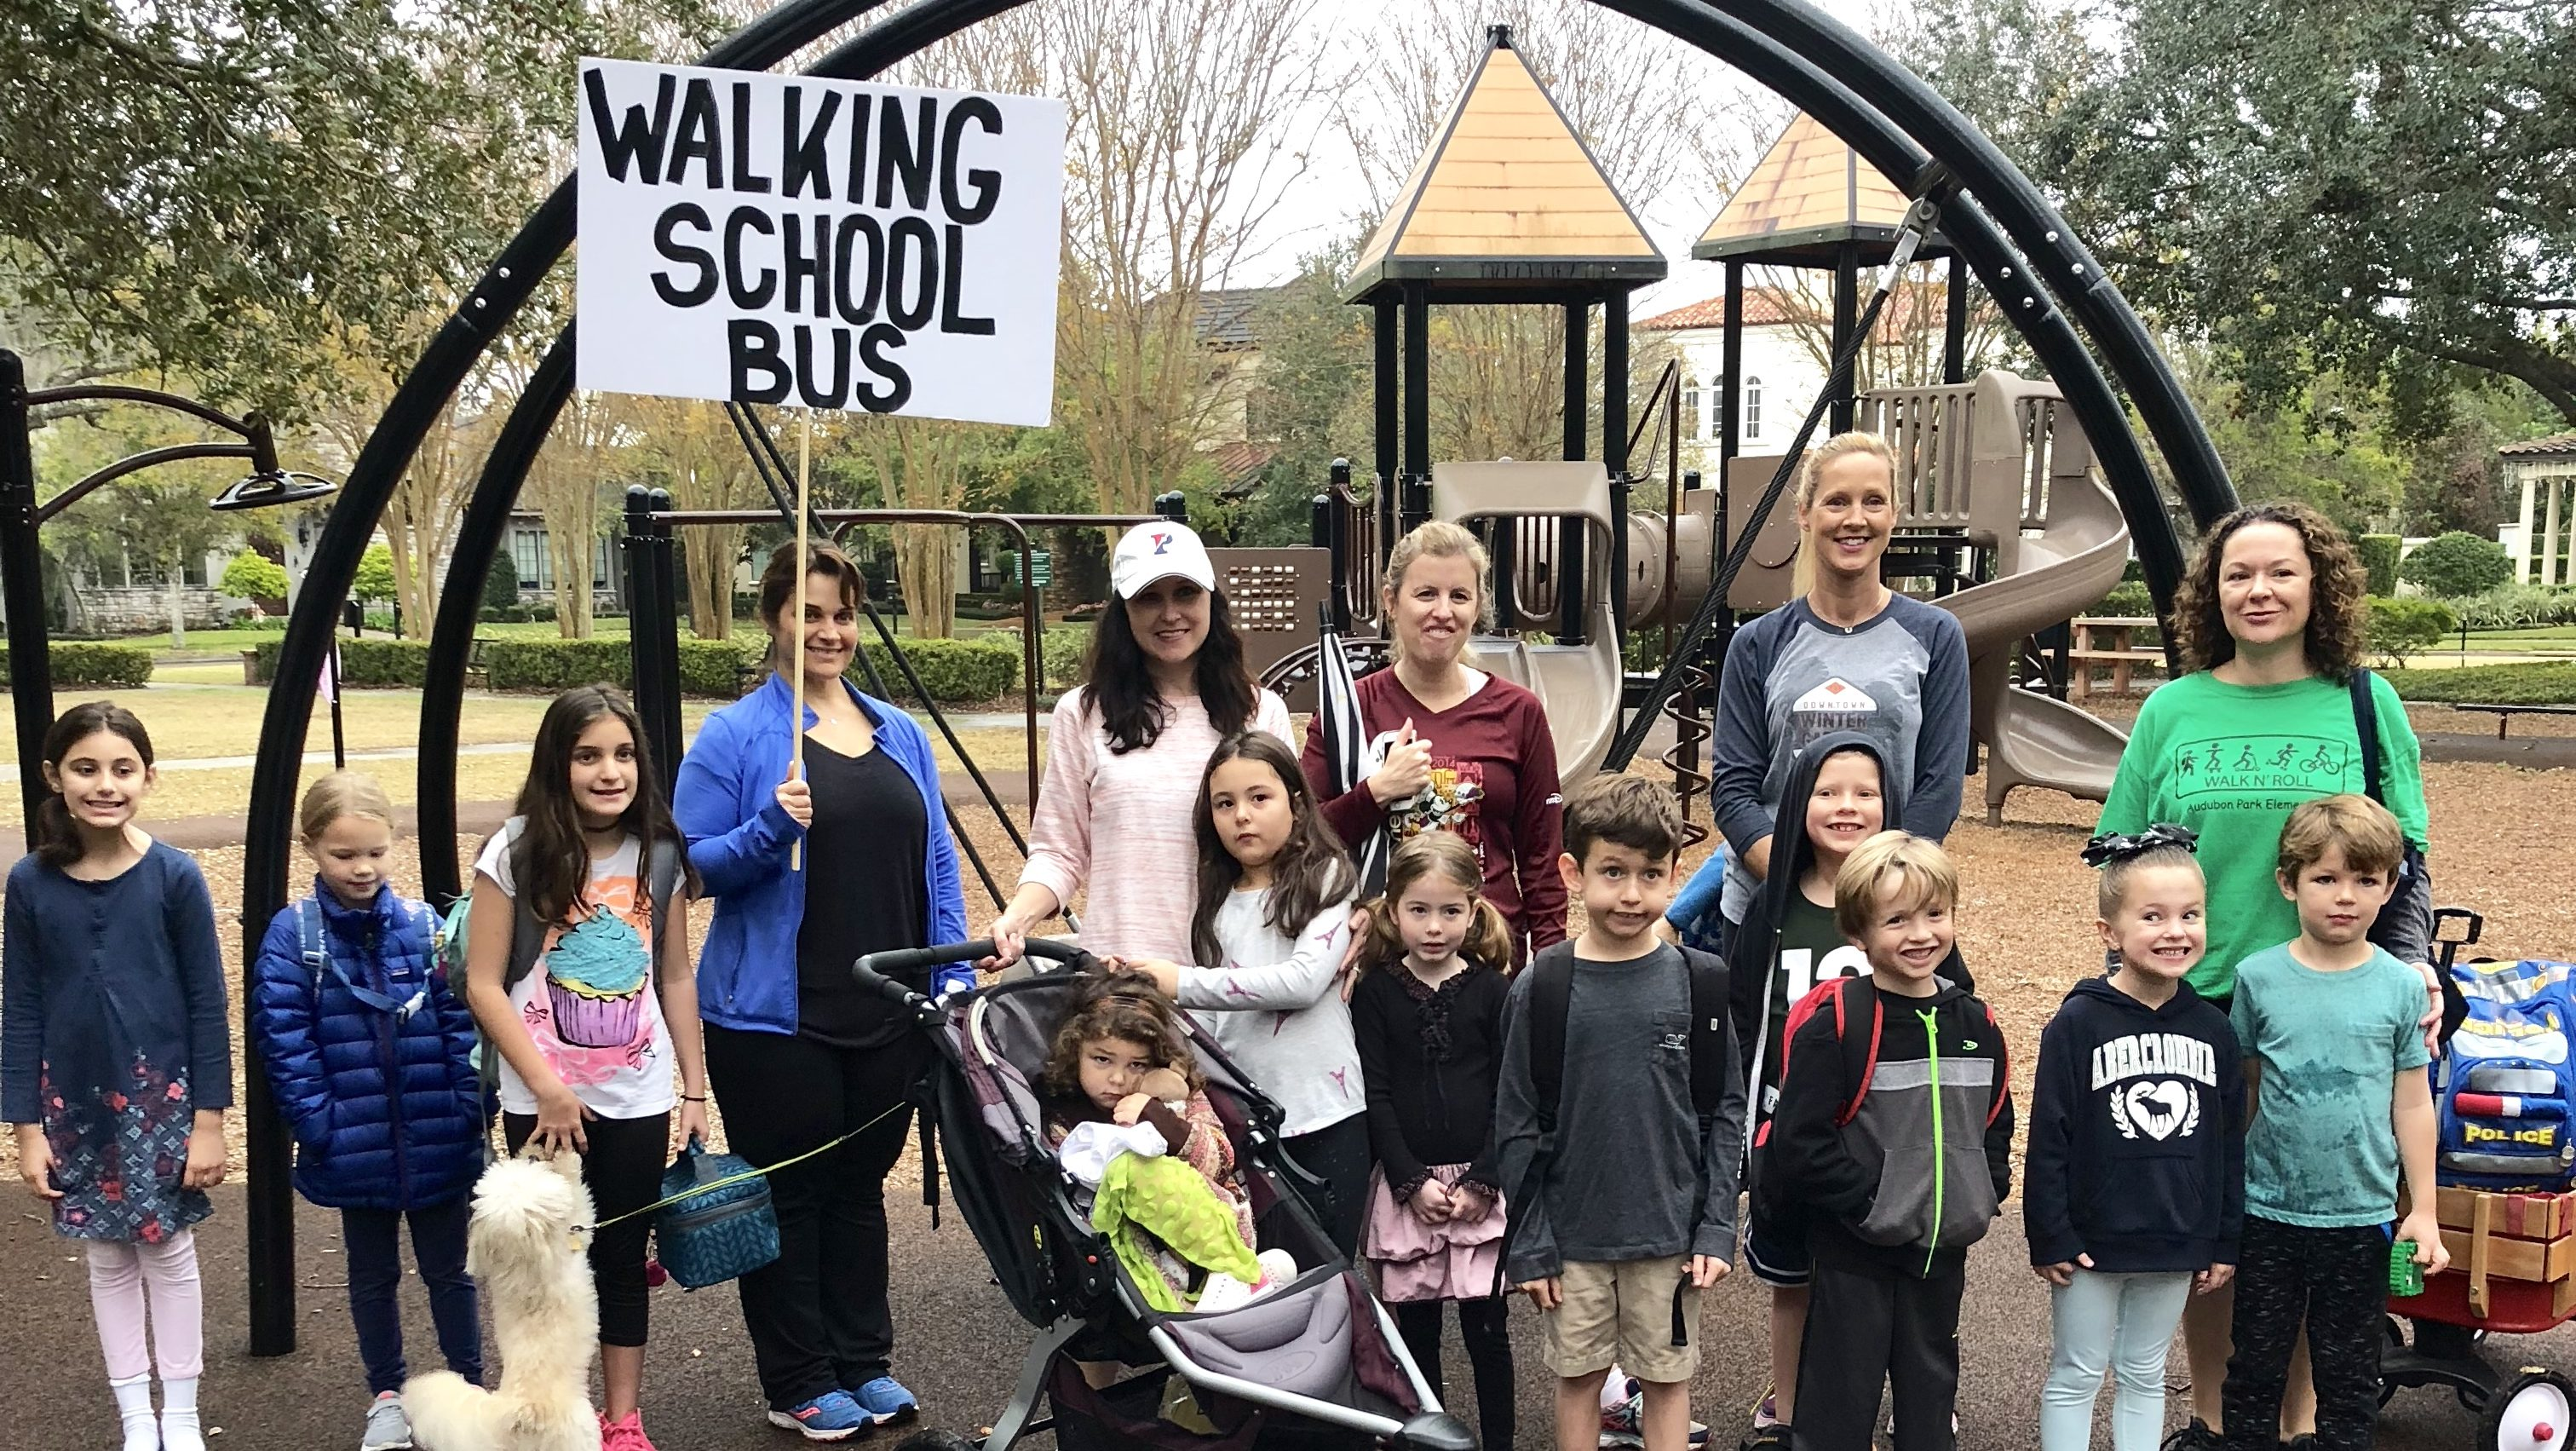 No Wheels Necessary: Starting Your Own Walking School Bus